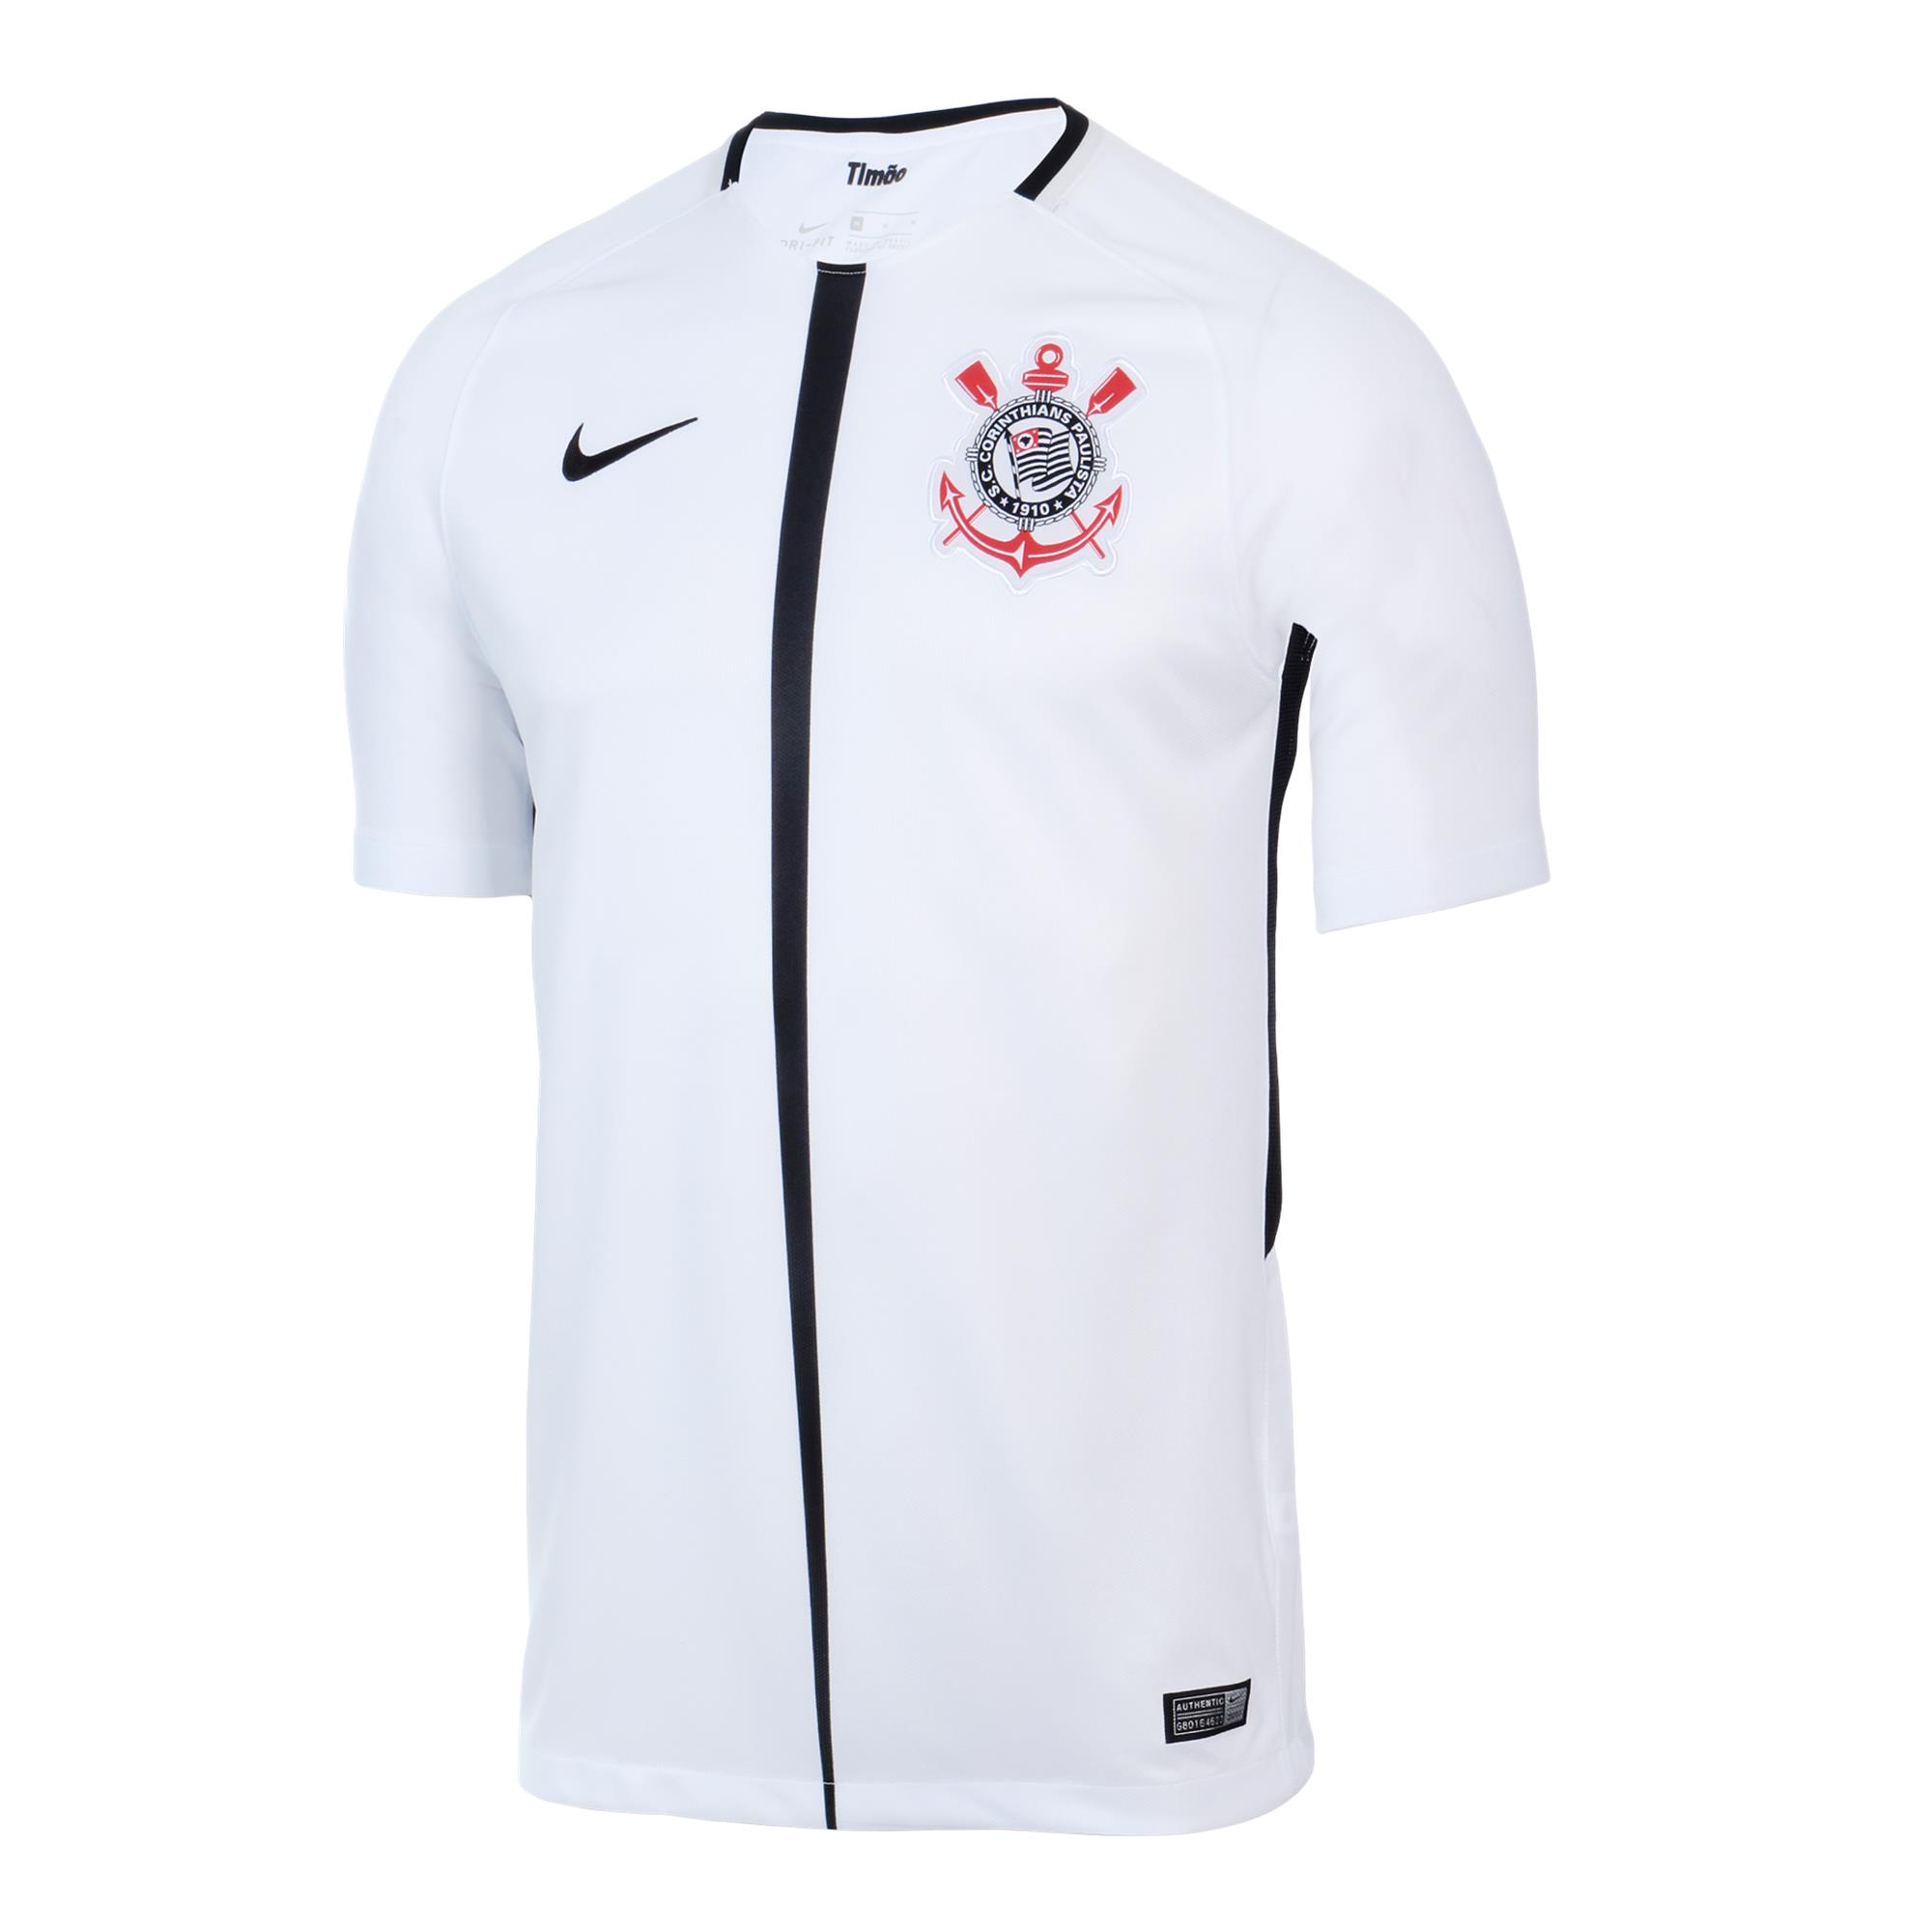 Corinthians Home Shirt - 2017 (image courtesy of  Football Shirt Culture )